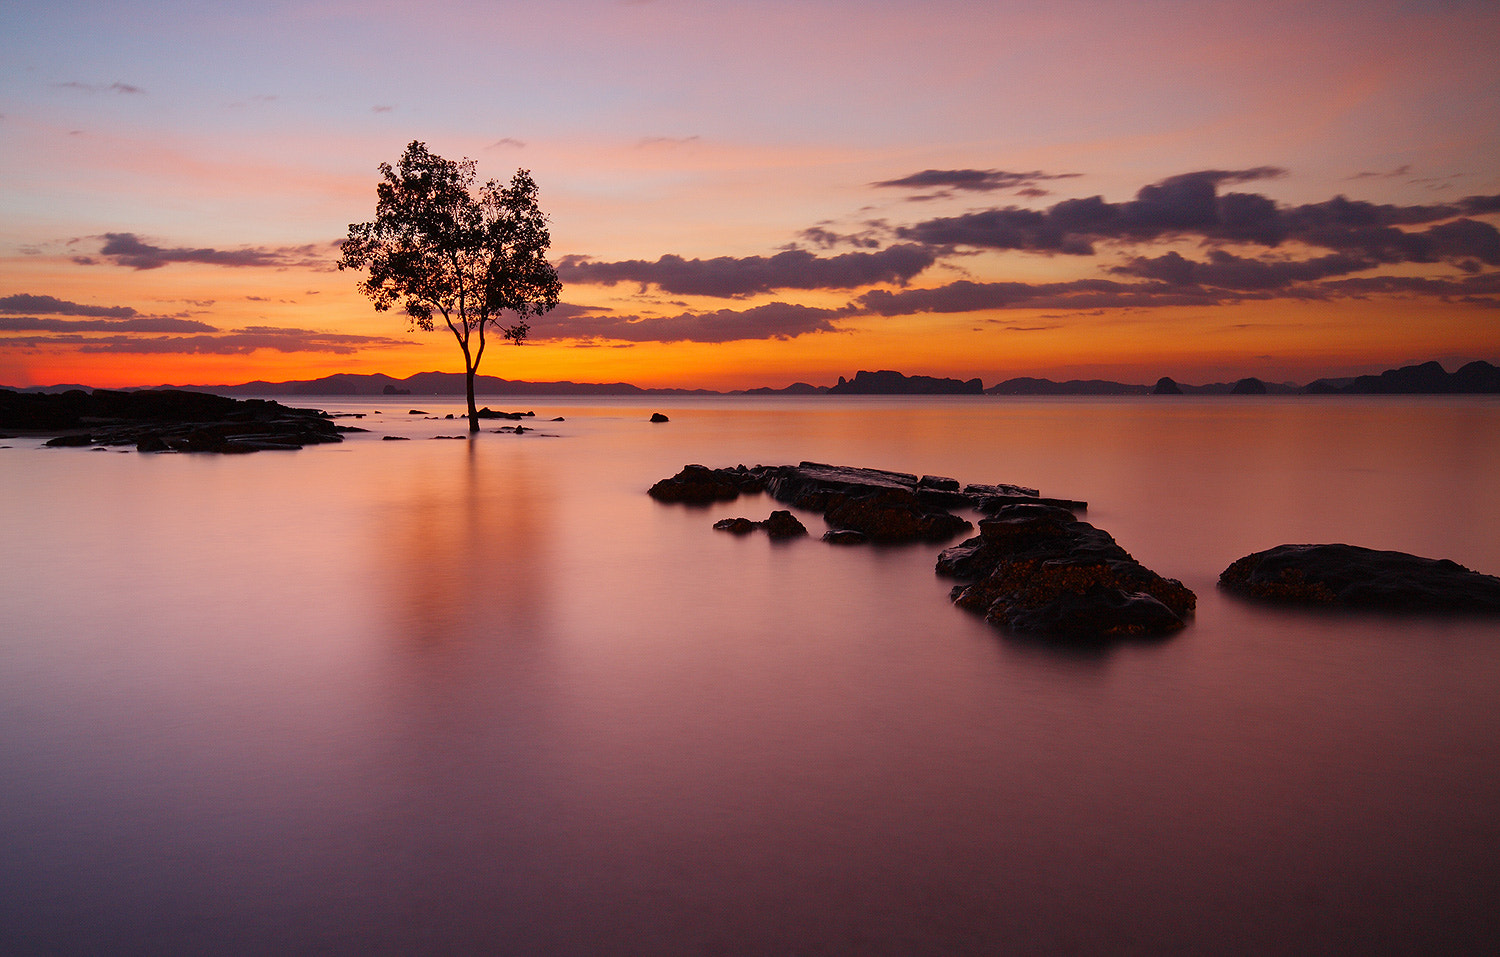 Photograph Sunset@Krabi by wichean krabi on 500px